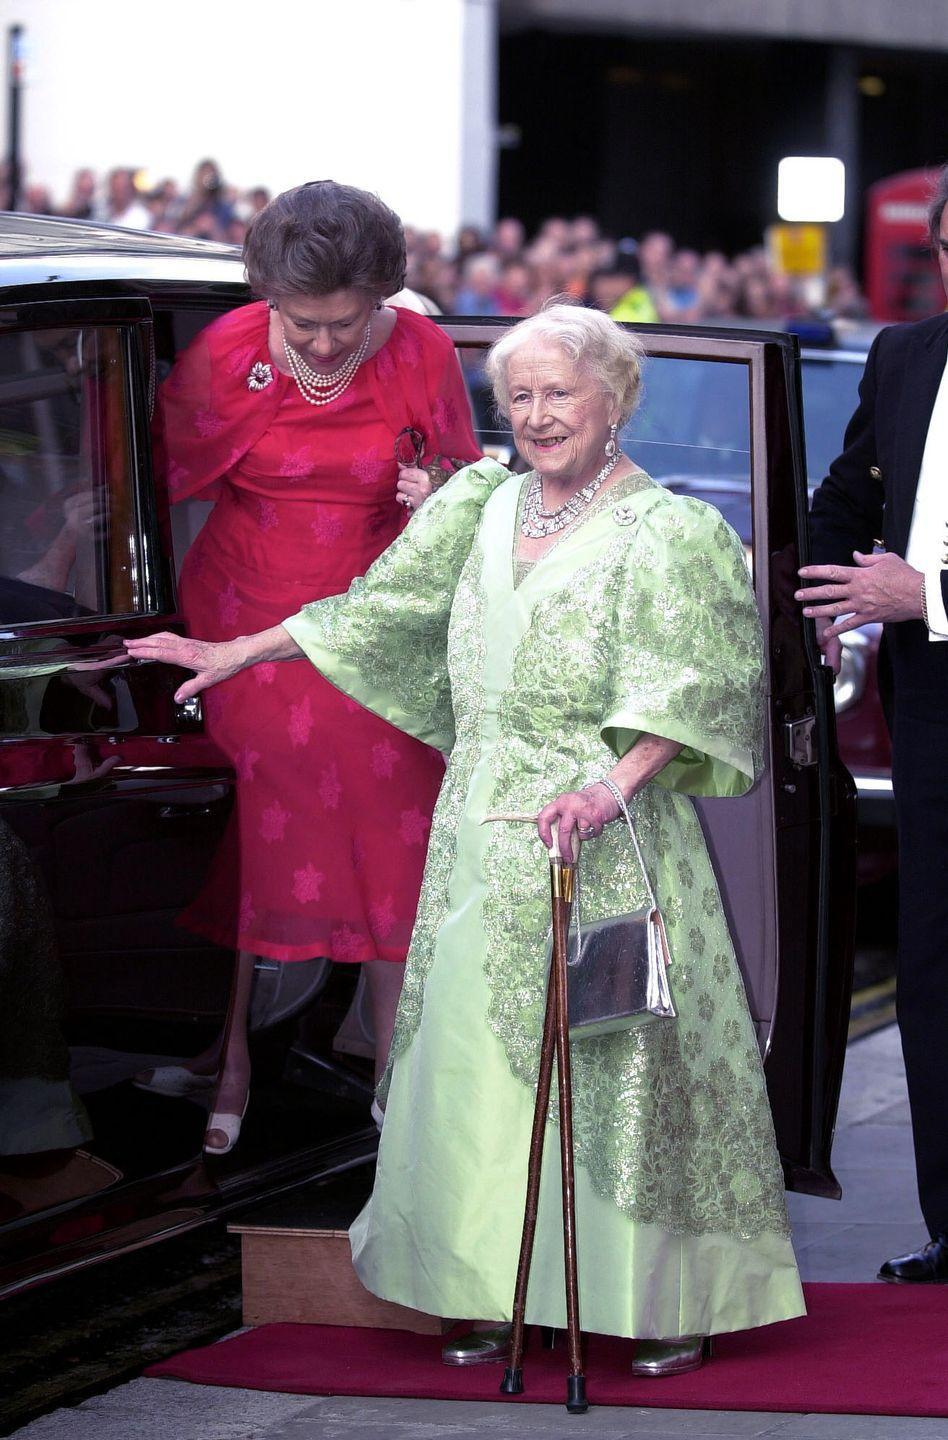 <p>As part of her 100th birthday celebration, the Queen Mother wore a pale green dress with metallic embroidery that looks just like the dress Tiana wore on her wedding day. </p>